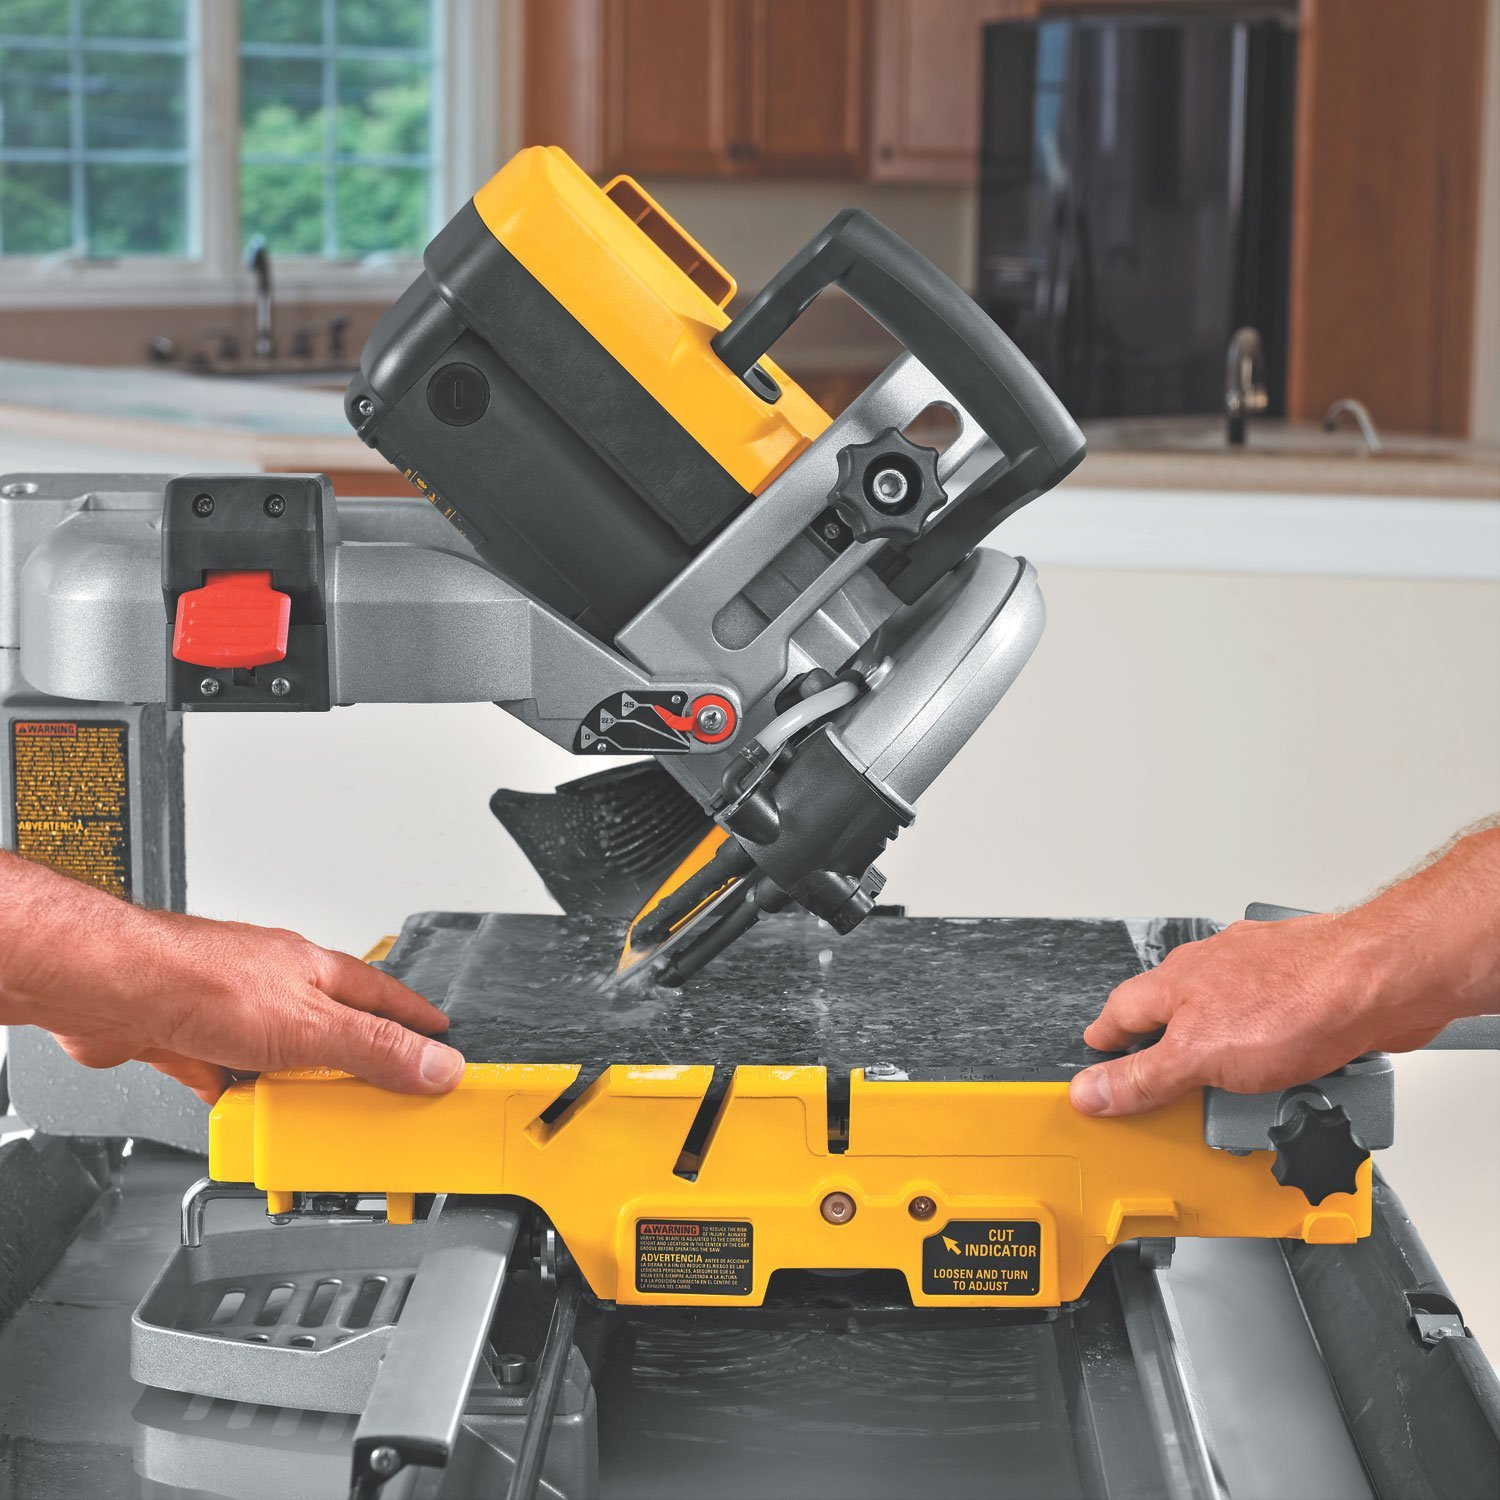 Tile saw the tile home guide just about every tiling job requires cutting tile what you will be cutting how much and in what manner will determine the tool you use to cut with dailygadgetfo Gallery